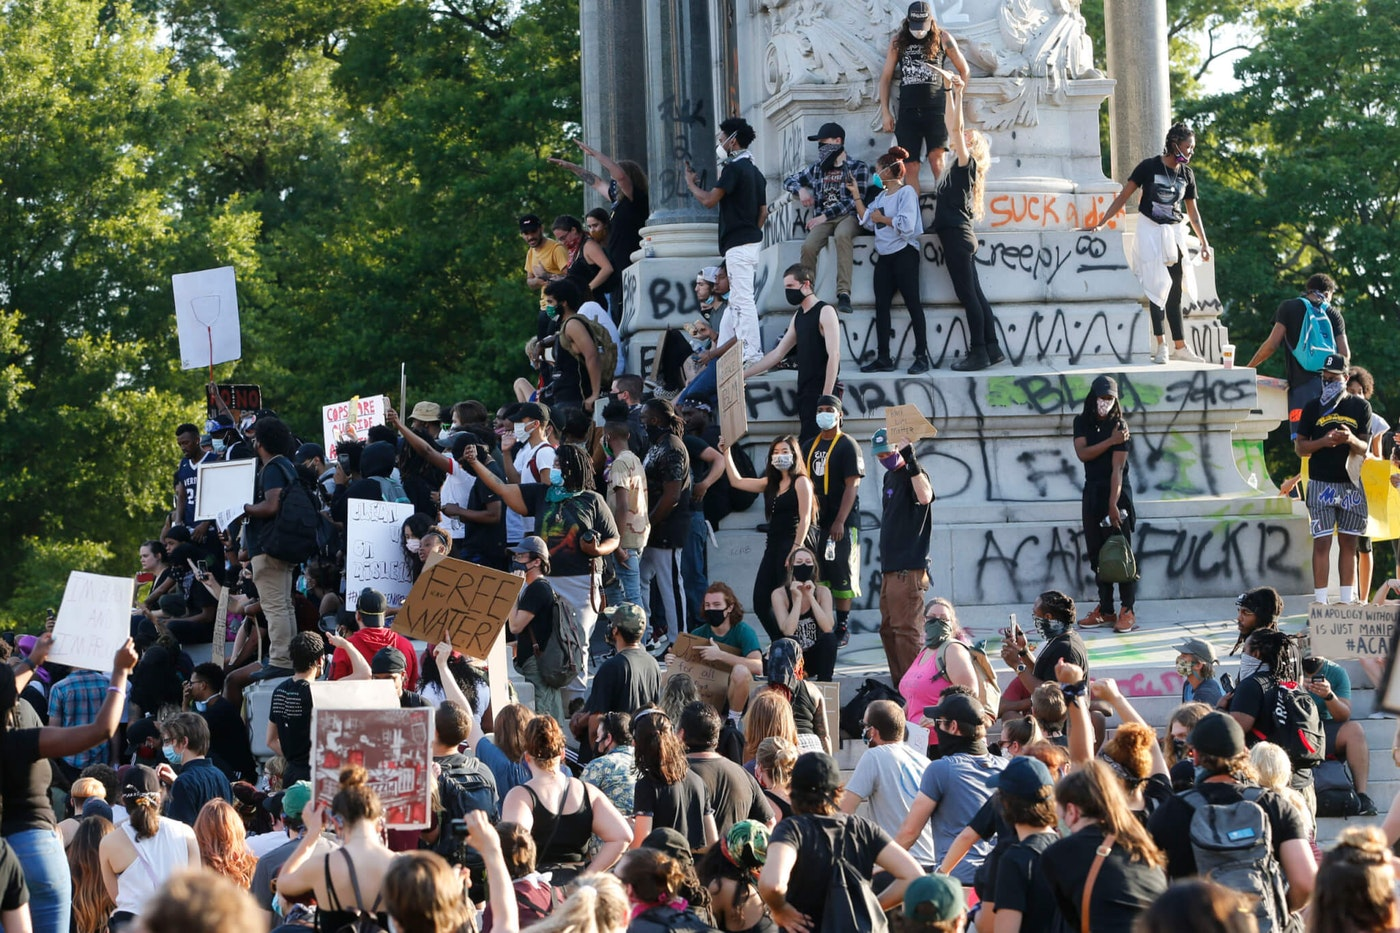 This Tuesday, June 2, 2020 file photo shows a large group of protesters gather around the statue of Confederate General Robert E. Lee on Monument Avenue near downtown in Richmond, Va. . (AP Photo/Steve Helber, File)